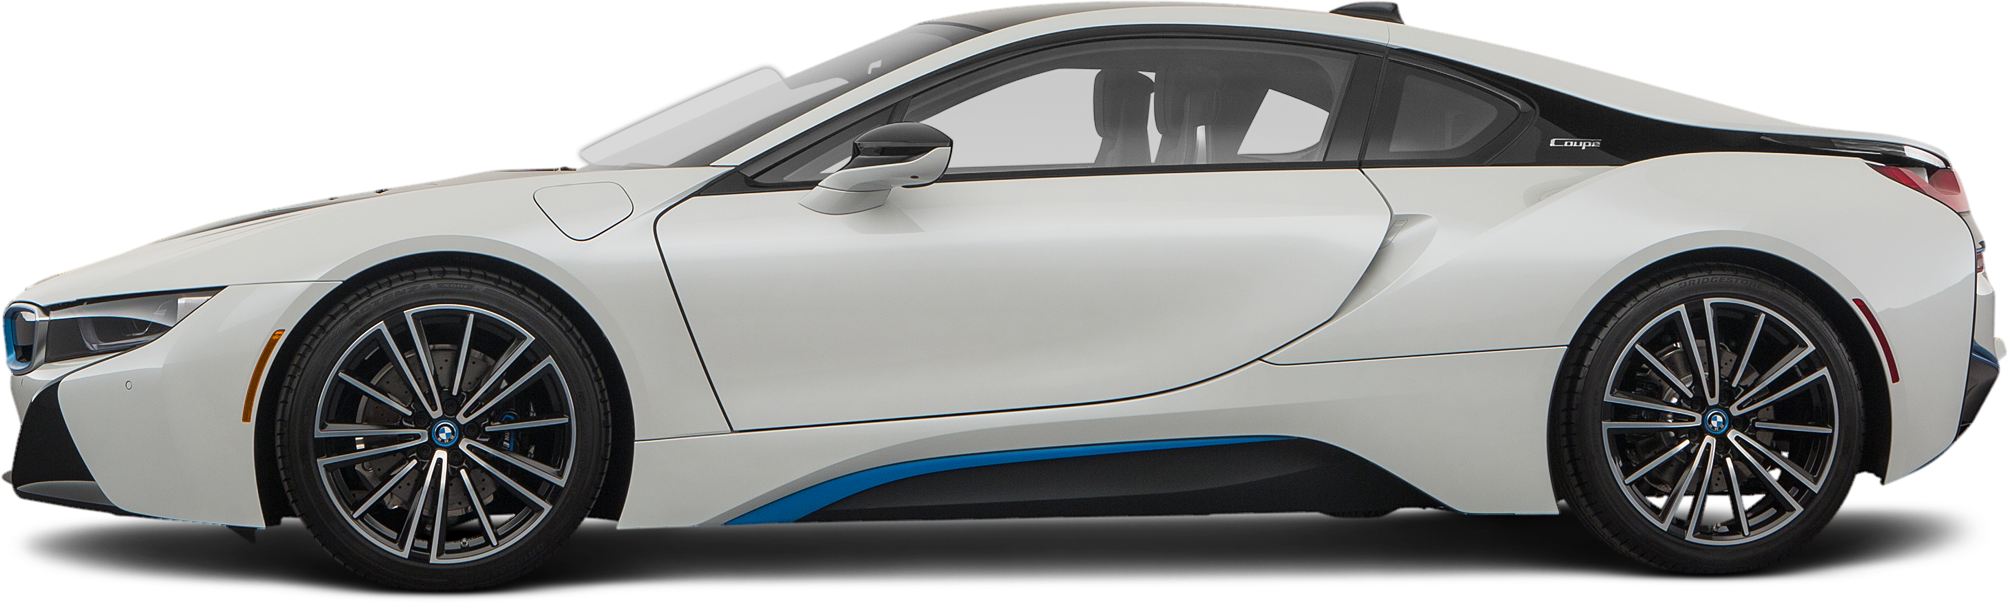 2019 Bmw I8 Coupe Digital Showroom Bmw Of Rockville